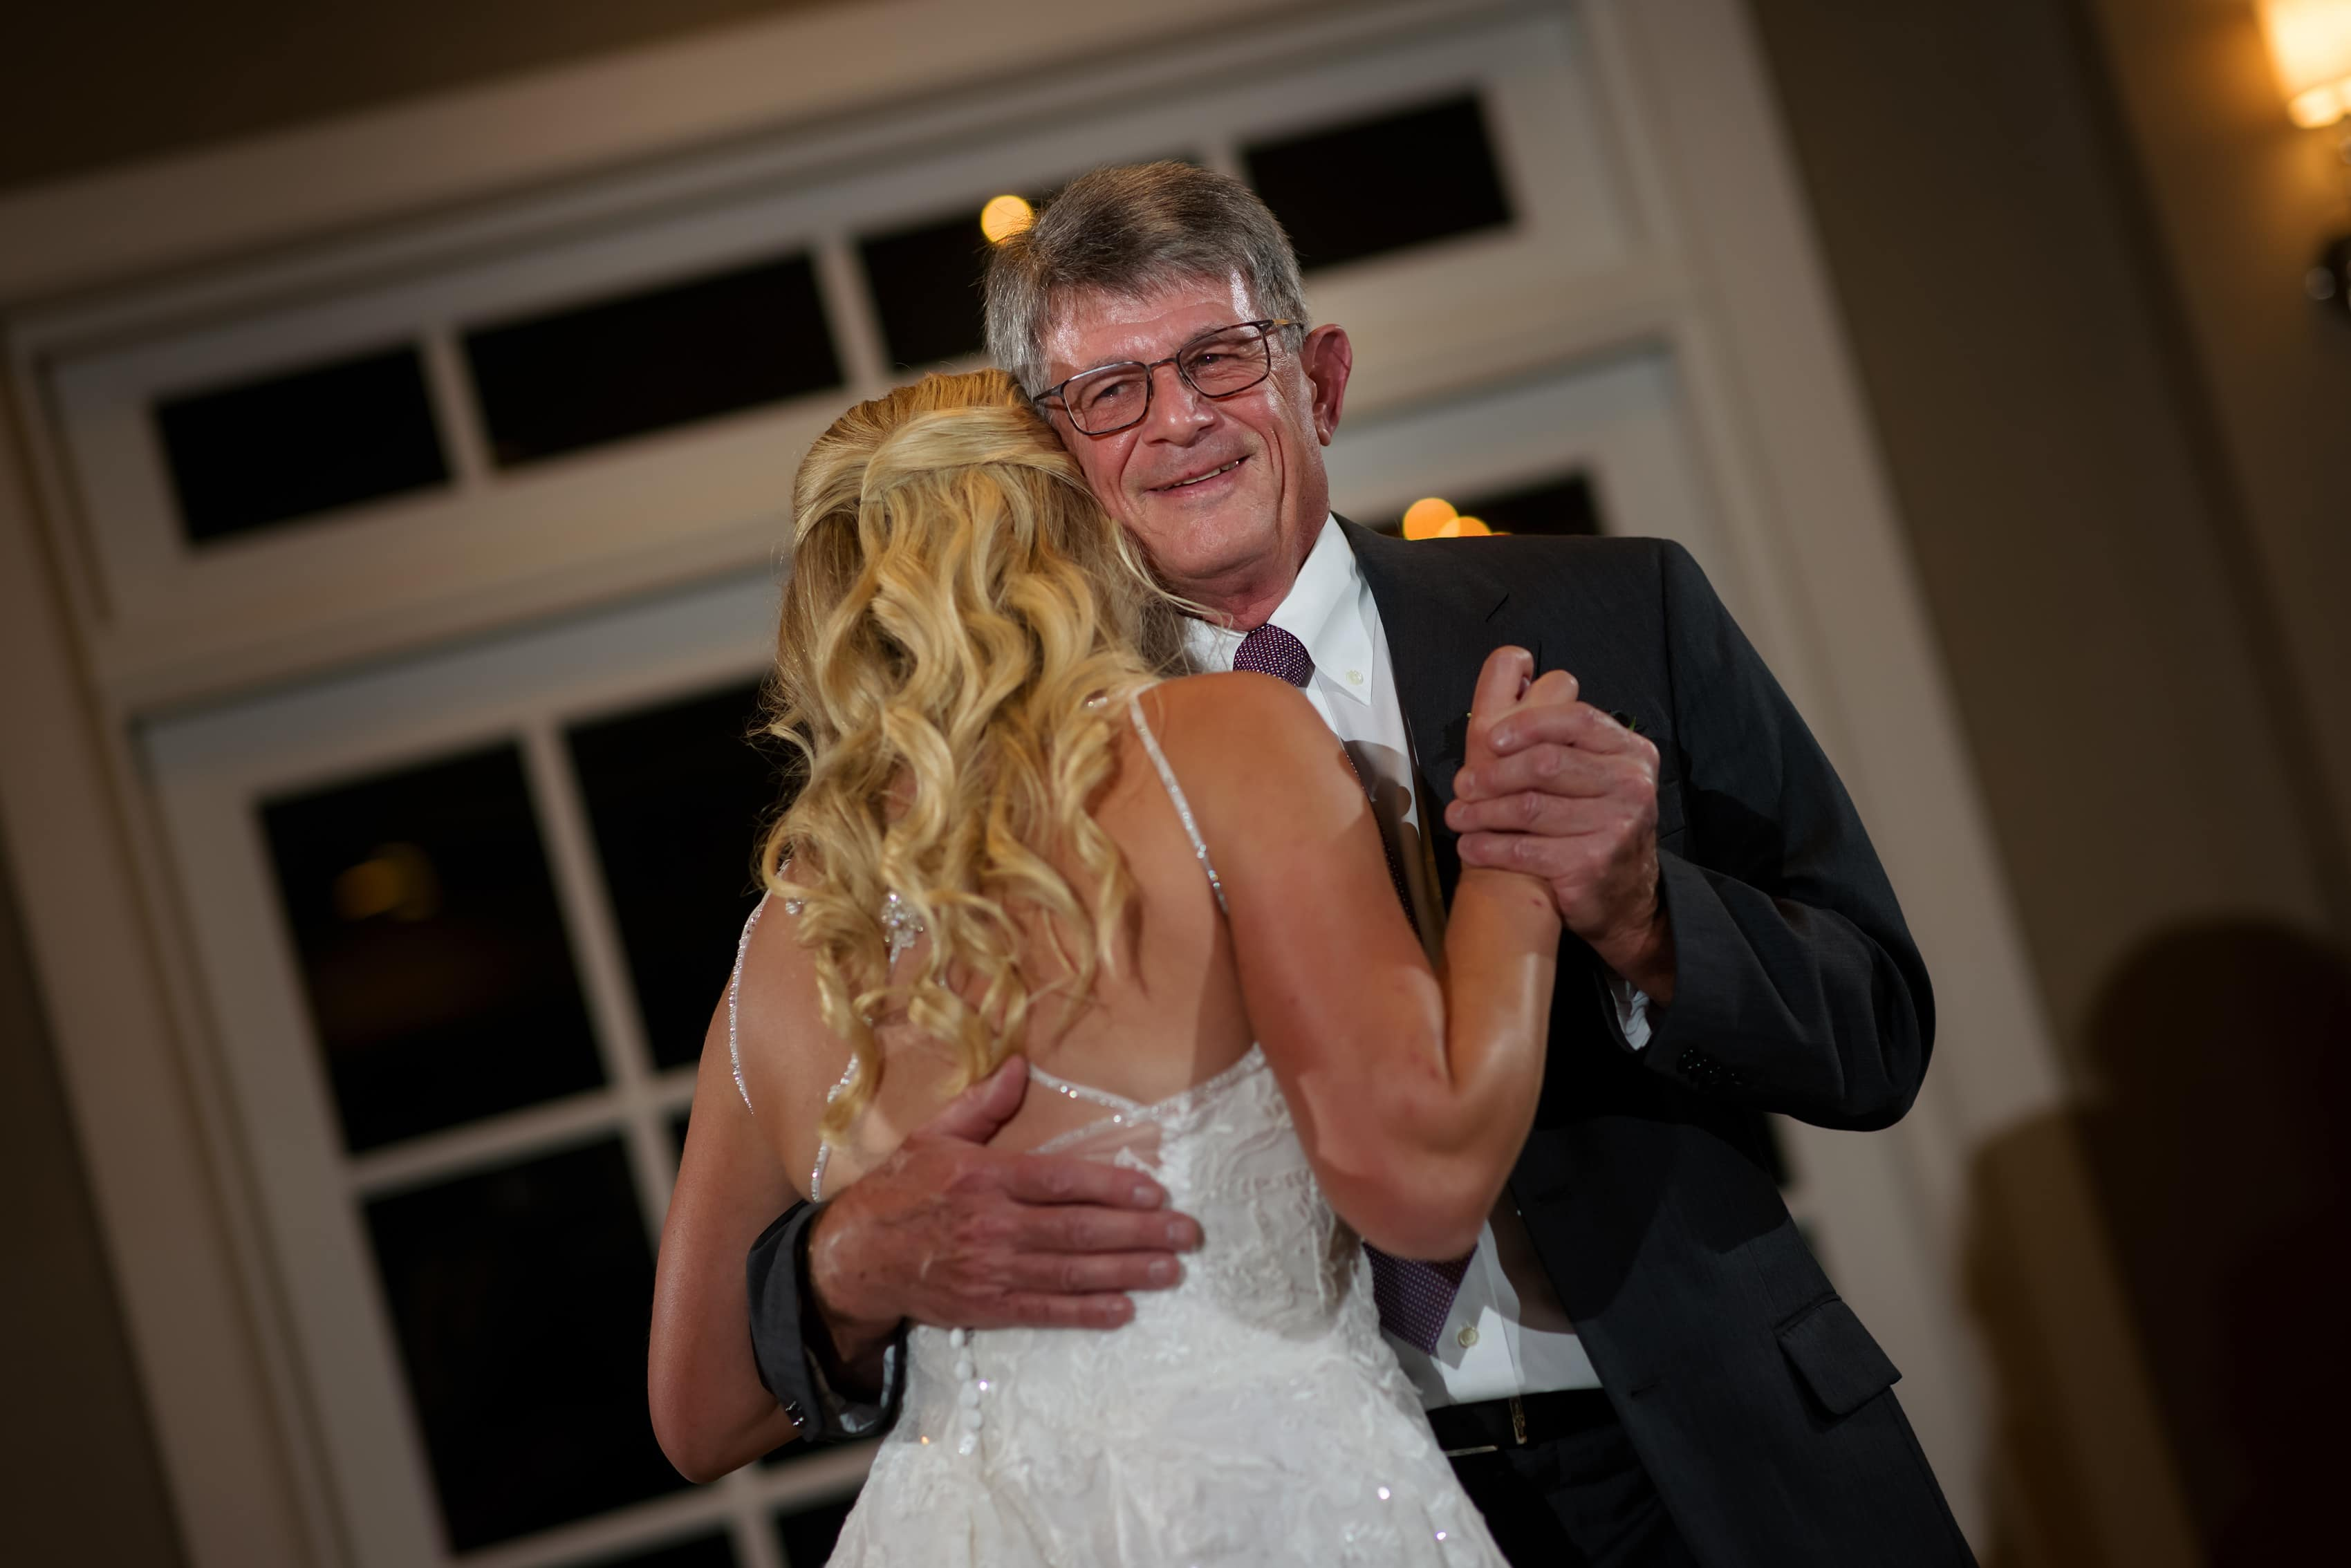 bride and father dance during wedding at Bay Harbor Inn in Petoskey, Michigan